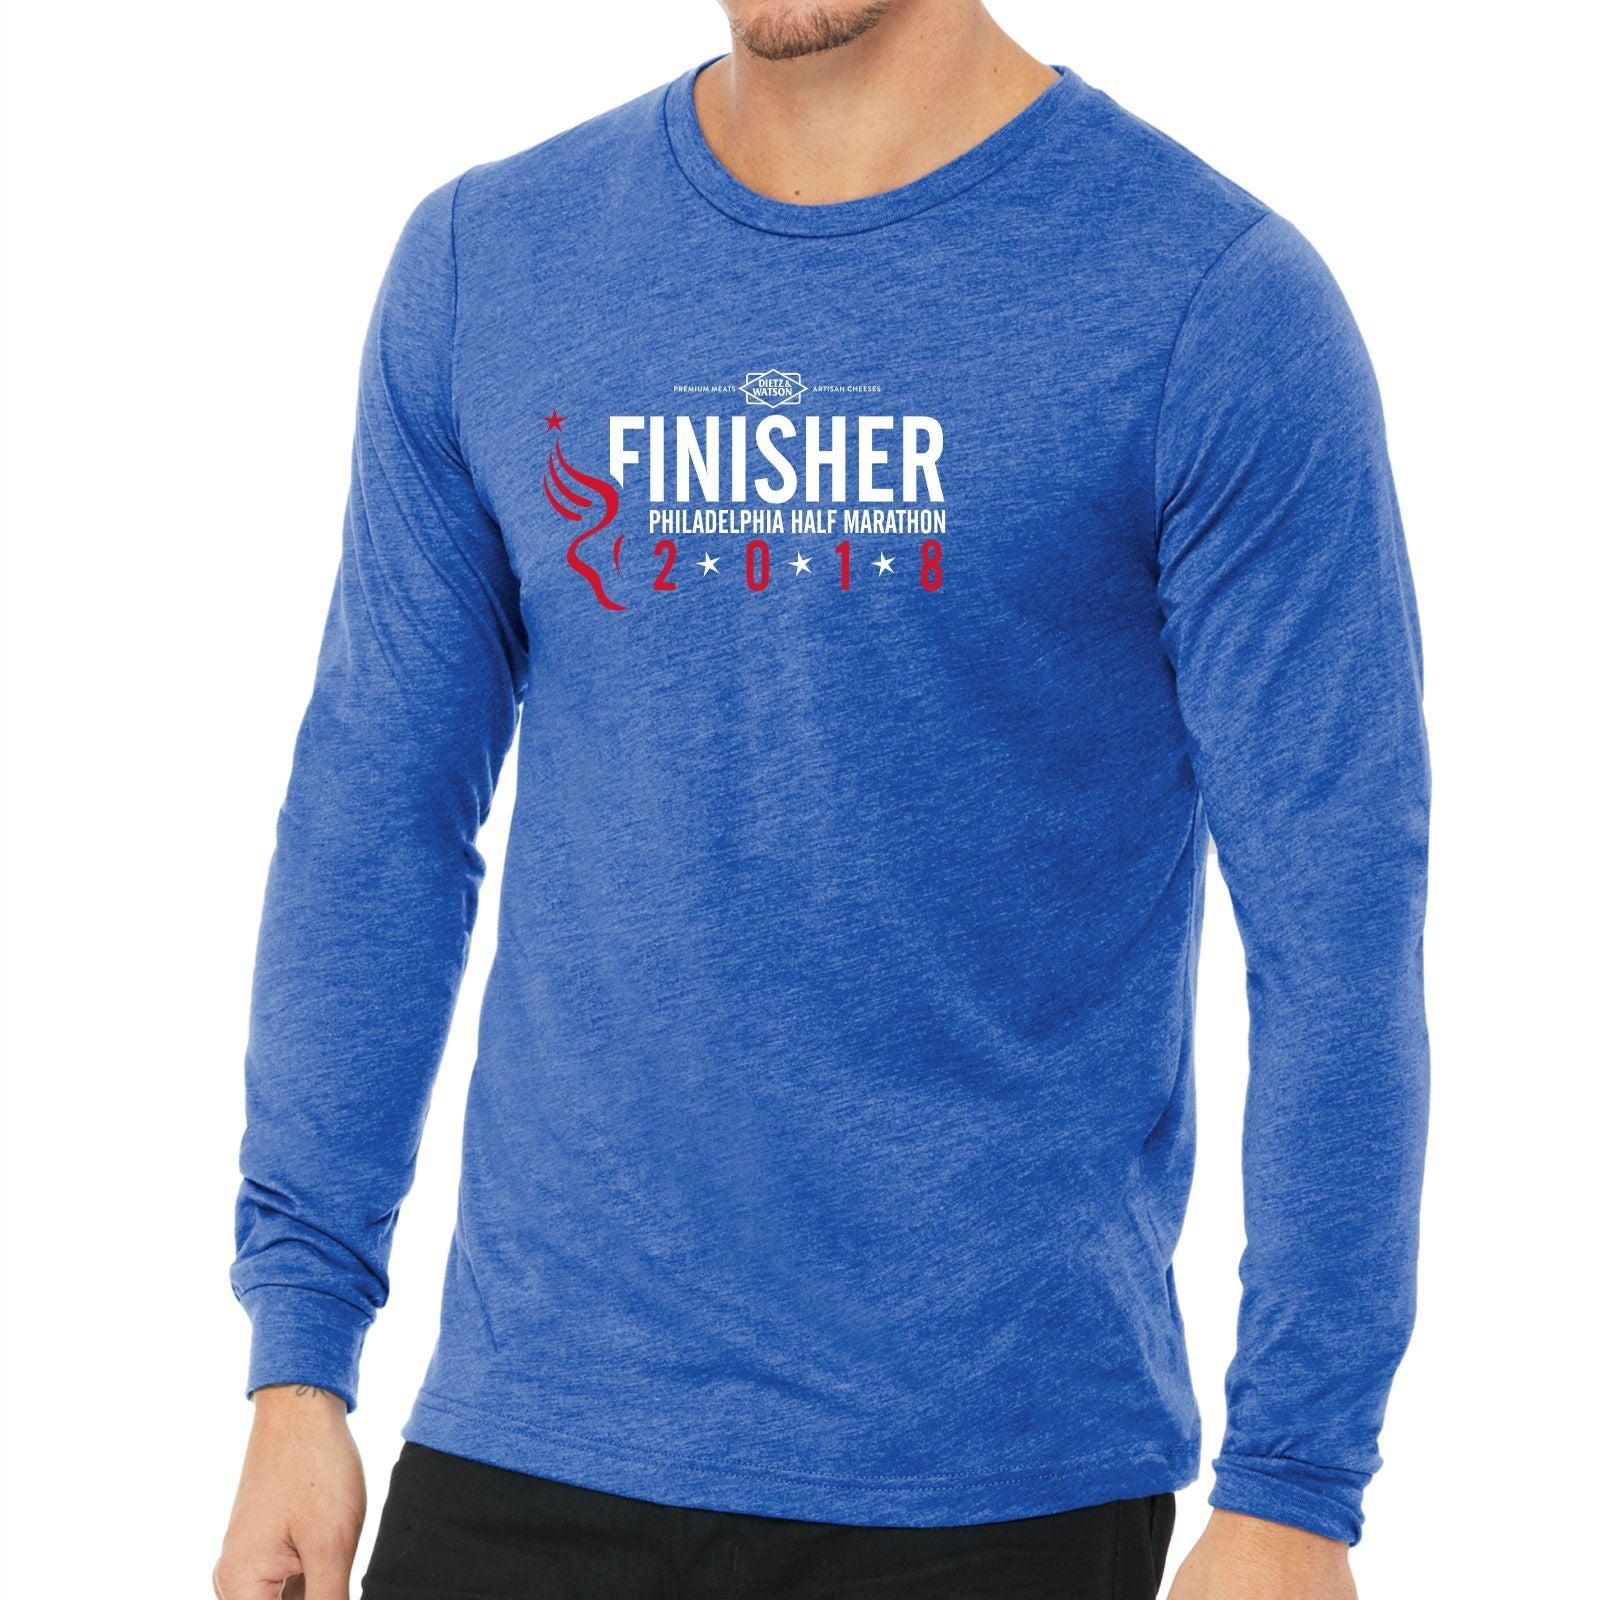 Dietz & Watson Philadelphia Half Marathon: '2018 Finisher 13.1' Men's LS Leisure Tee - True Royal Triblend